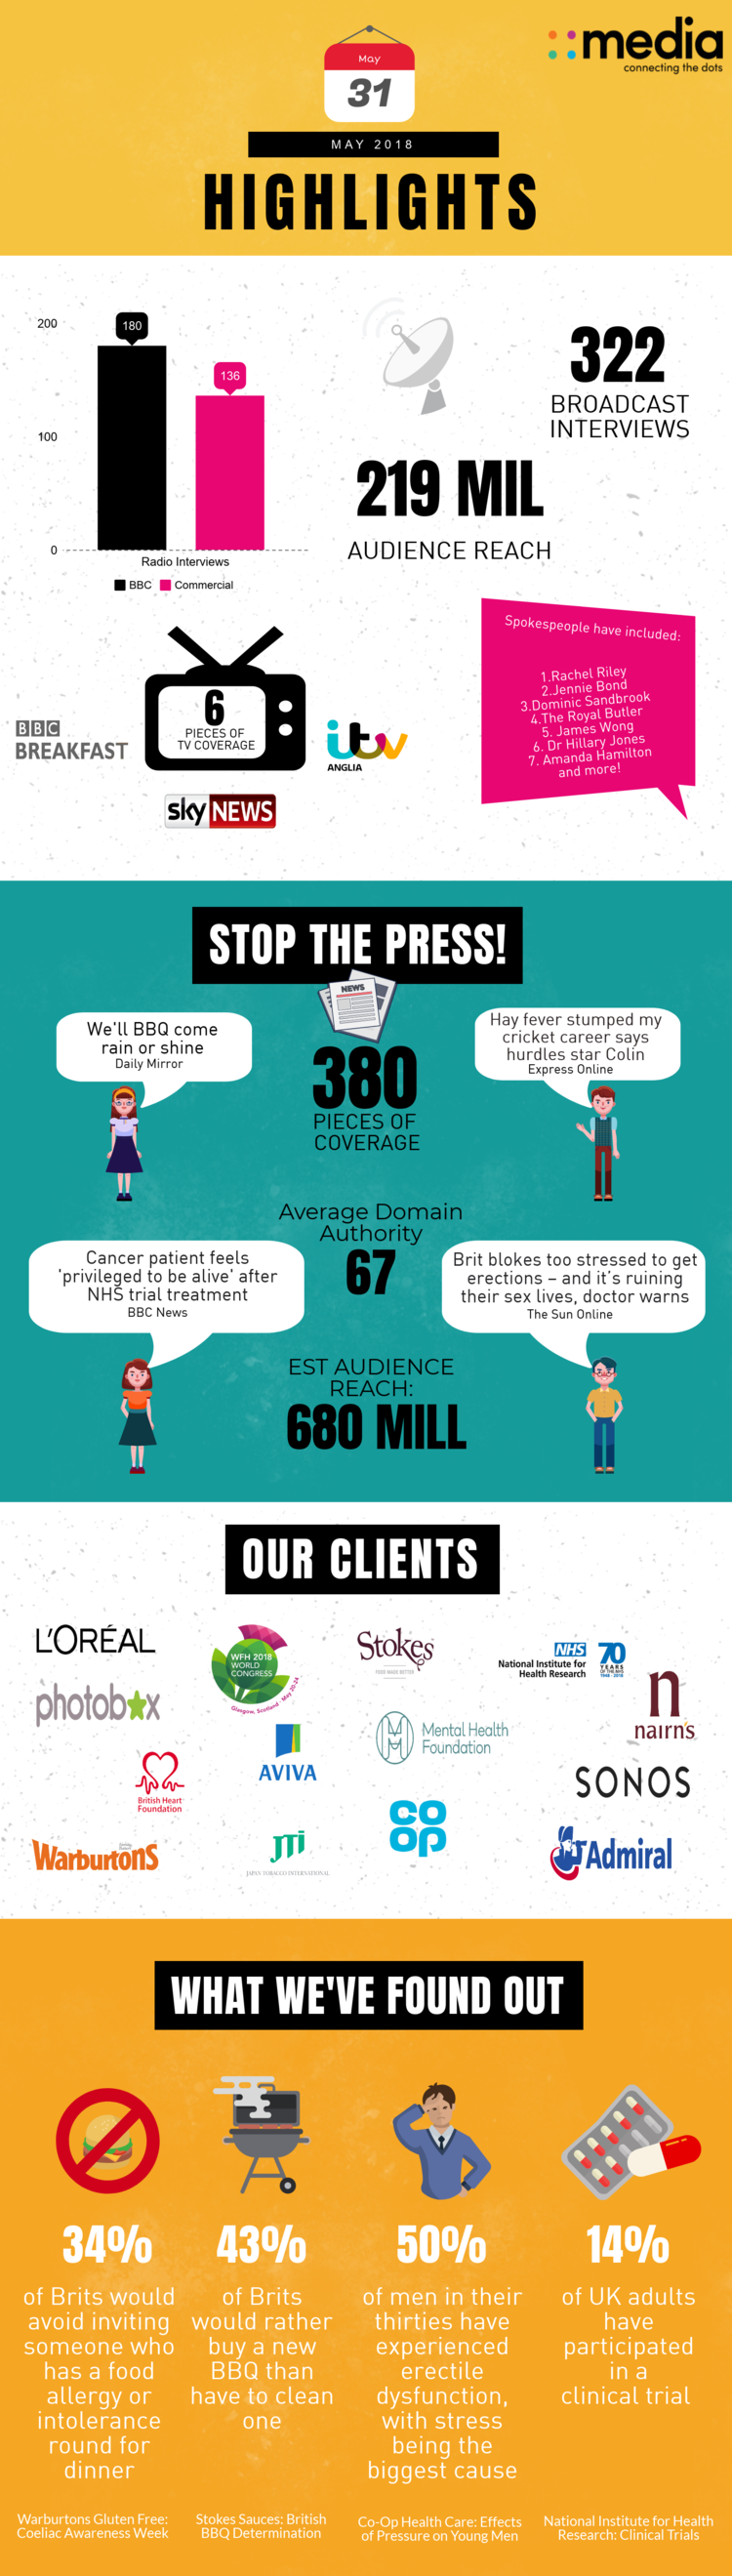 Infographic: May Highlights at 4media group